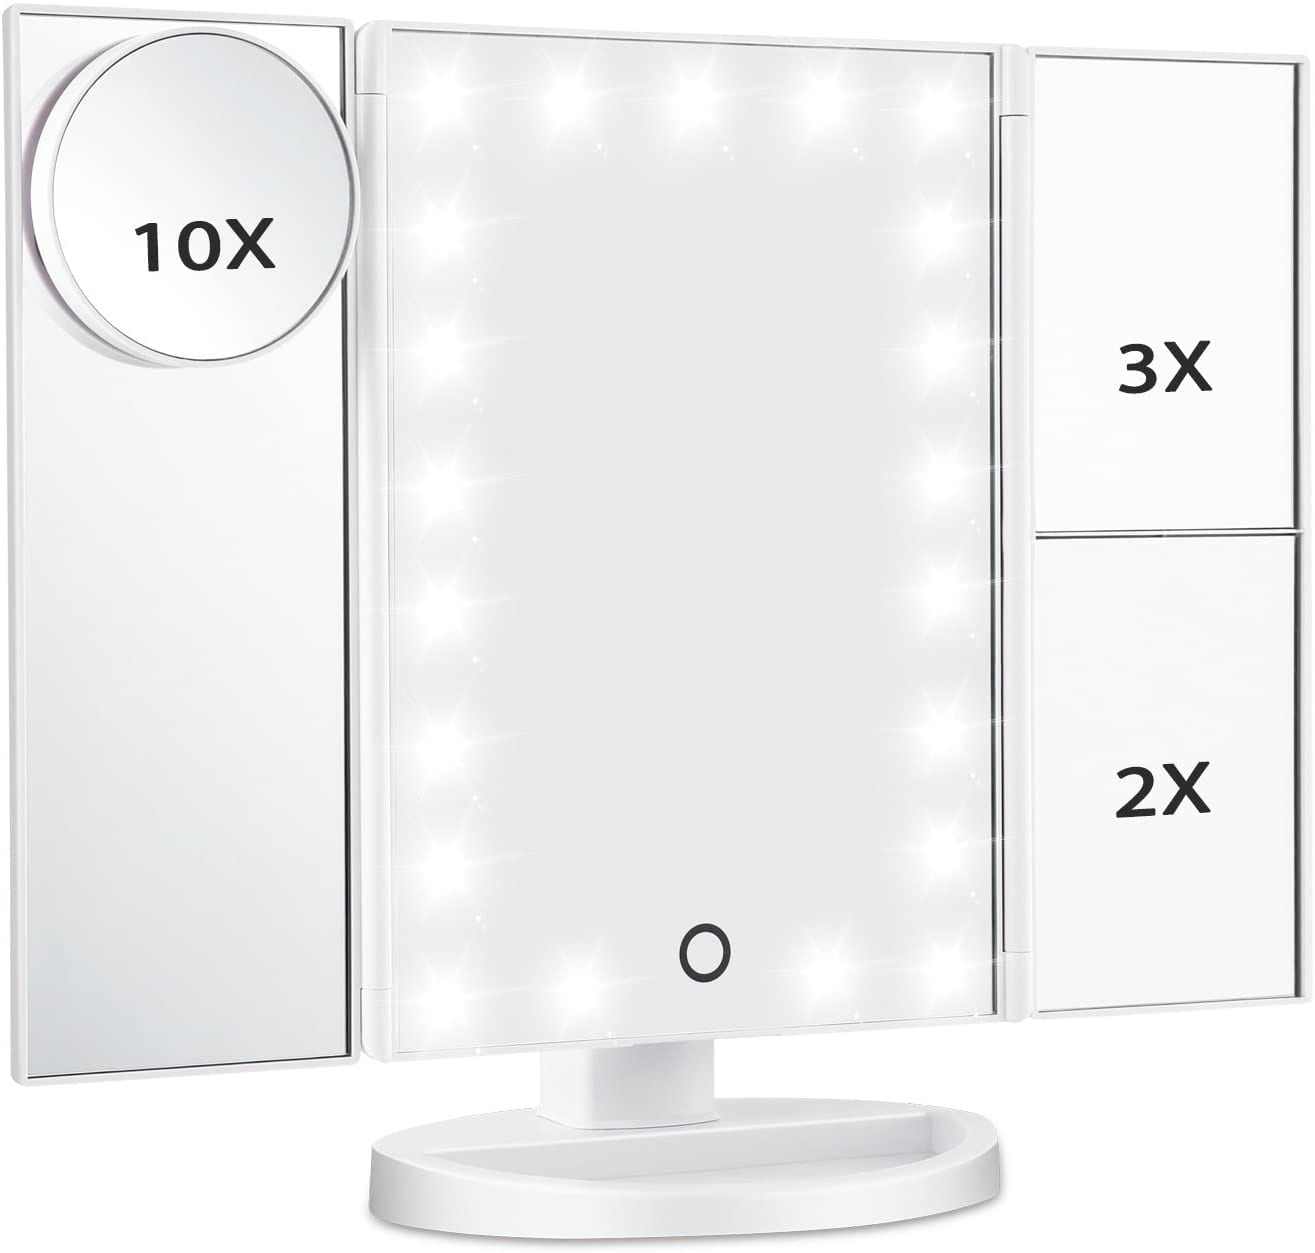 Magicfly Vanity Mirror Lighted Makeup Mirror 10X 3X 2X 1X Magnifying Mirror with 21 LED Lights, Trifold Mirror with Touch Screen, Adjustable Brightness & Stand, Dual Power Supply Mode, White